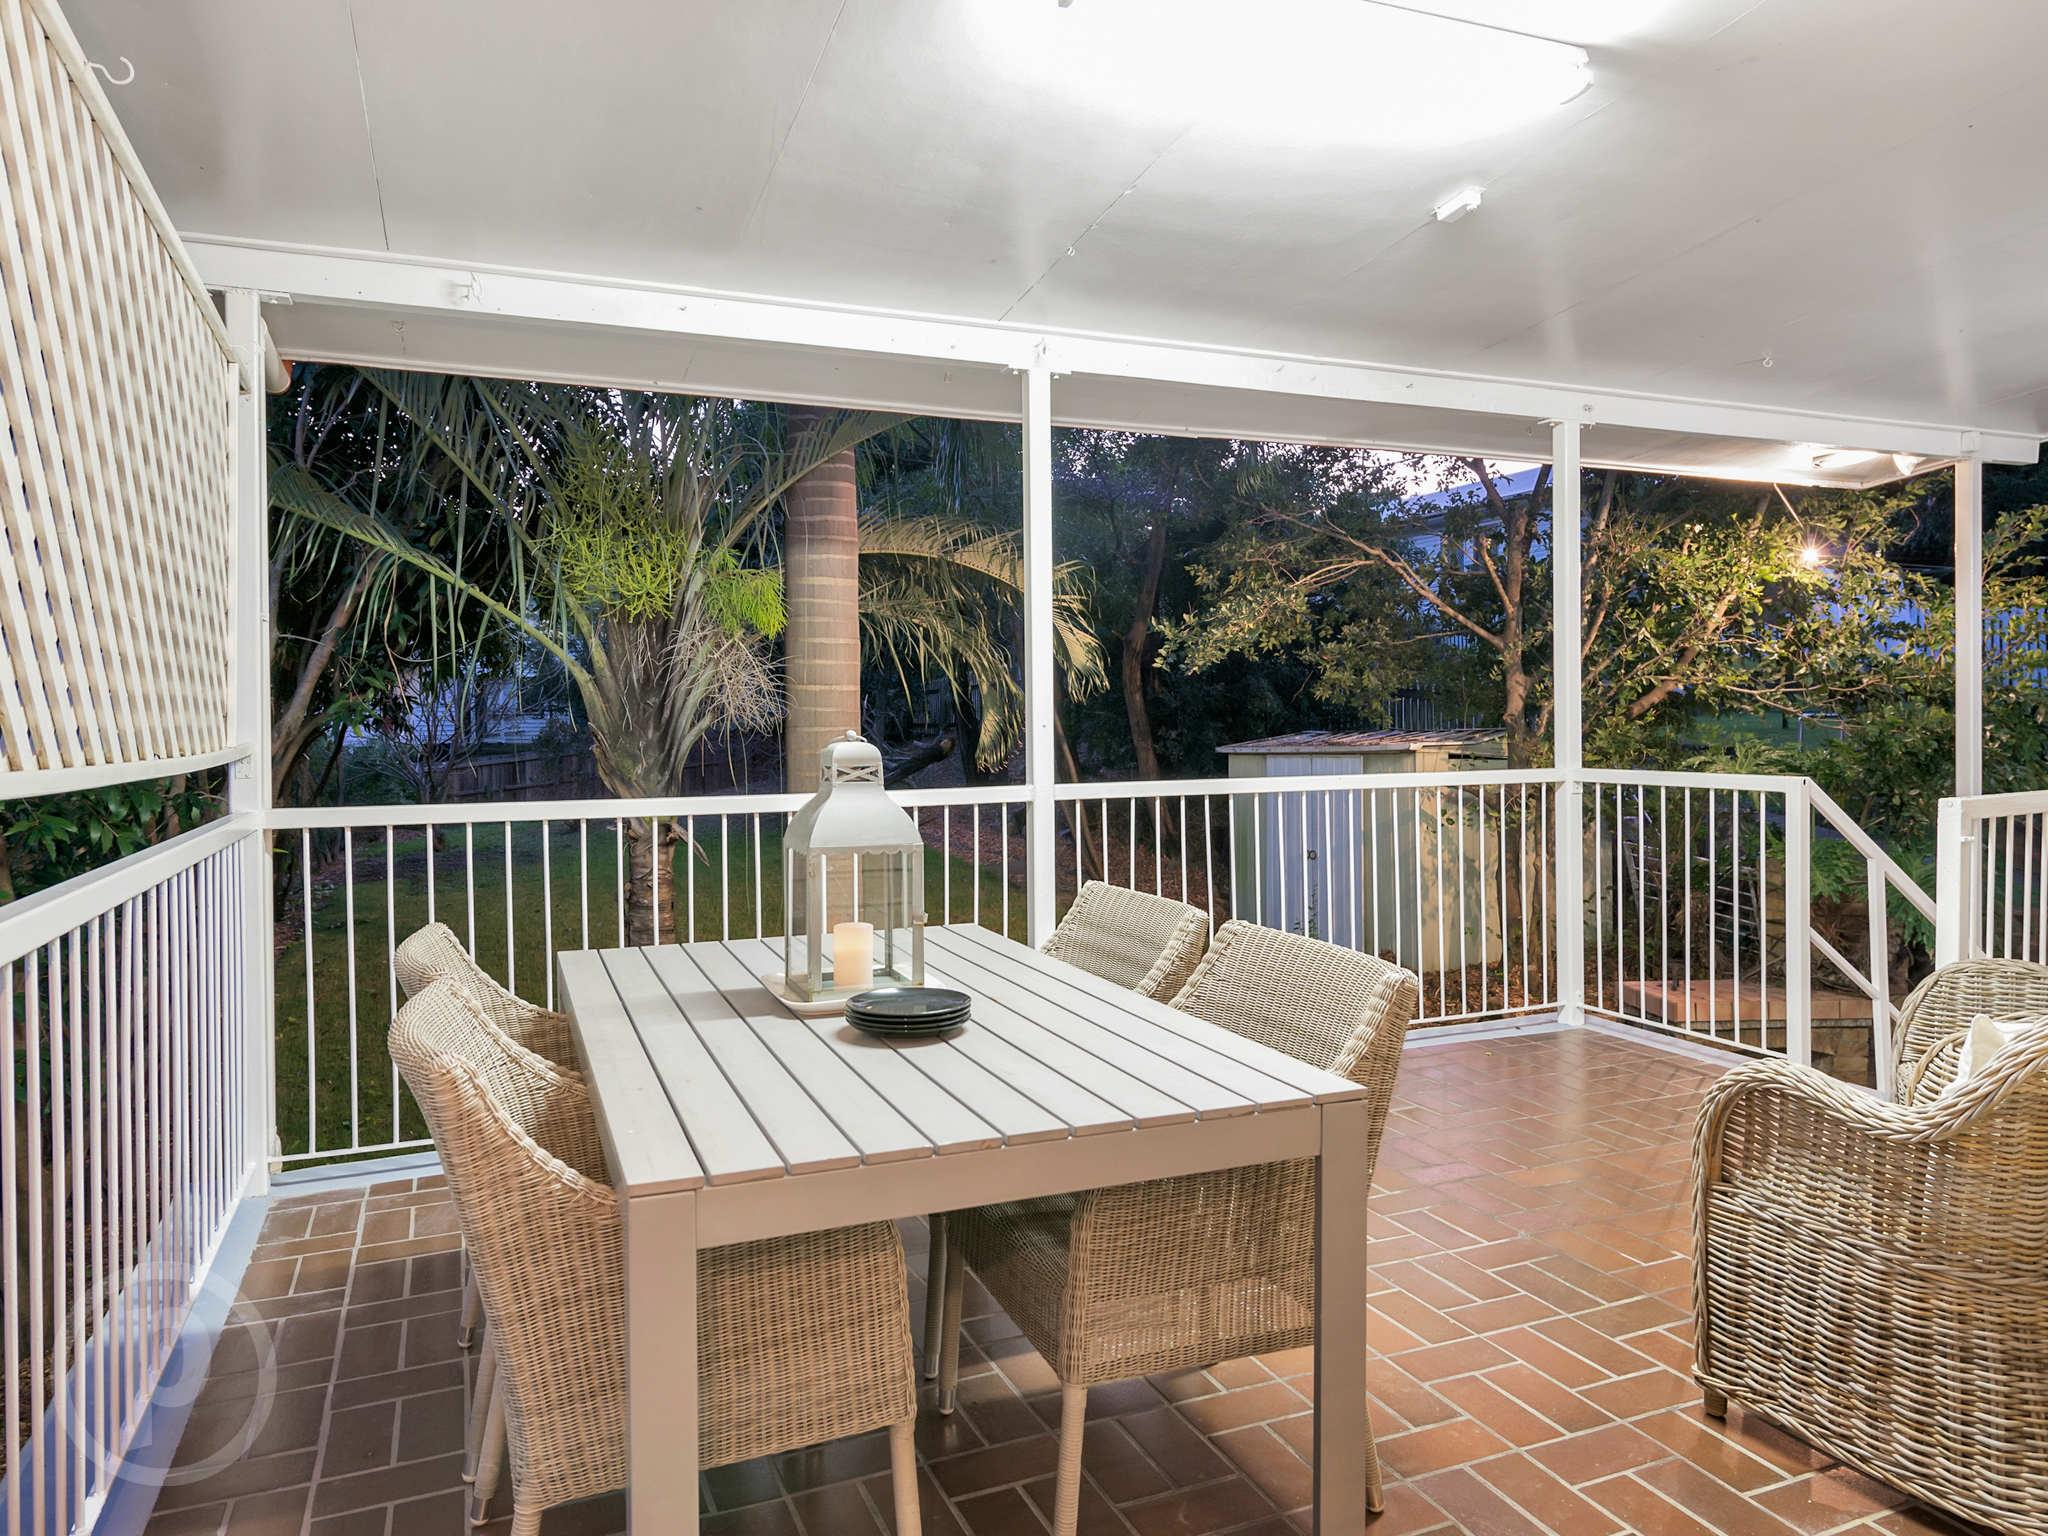 34a Yardley Avenue, Ashgrove, QLD 4060 for Sale   realestateVIEW